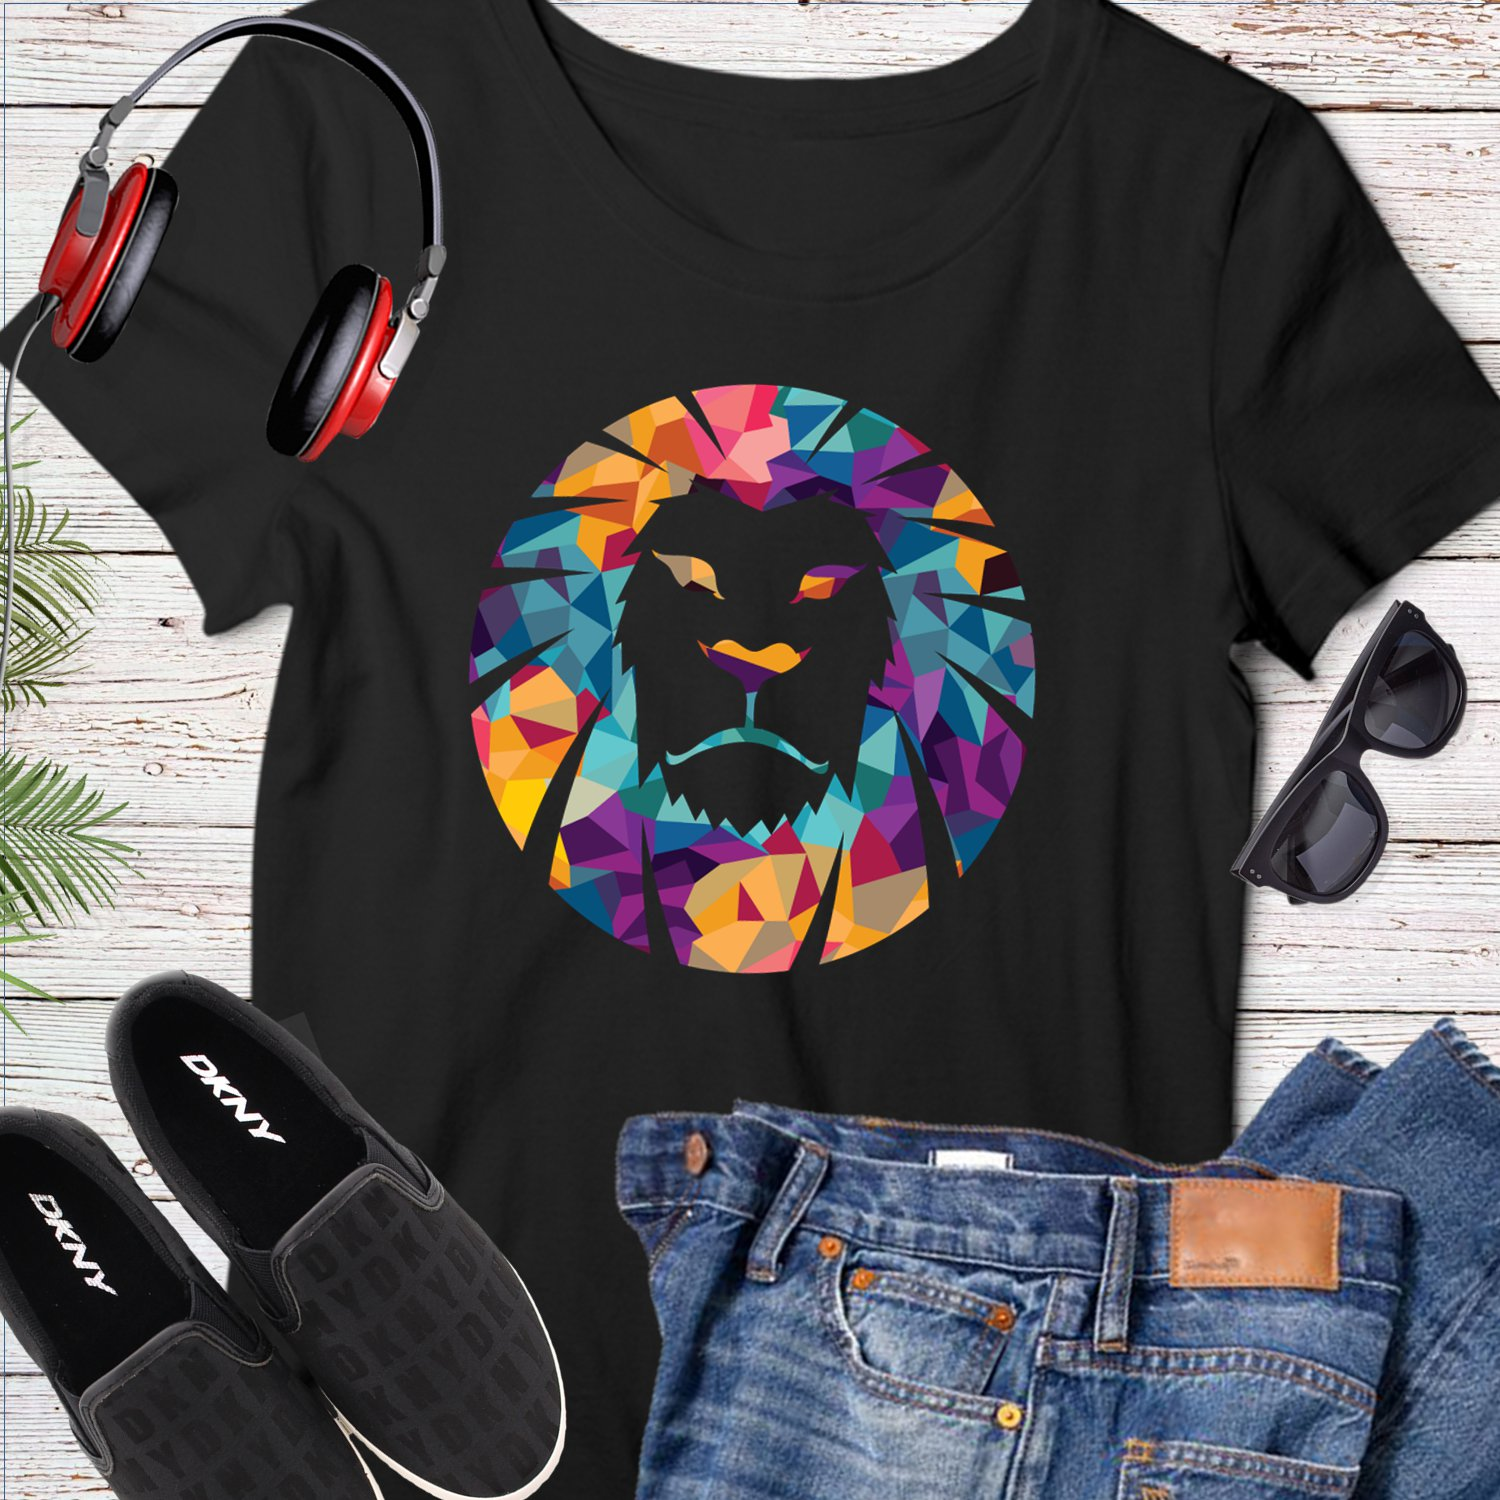 Cool Lion Colorful Abstract Eyeglass Vector Tee Shirt Design Graphic Instant Download Transfer D2